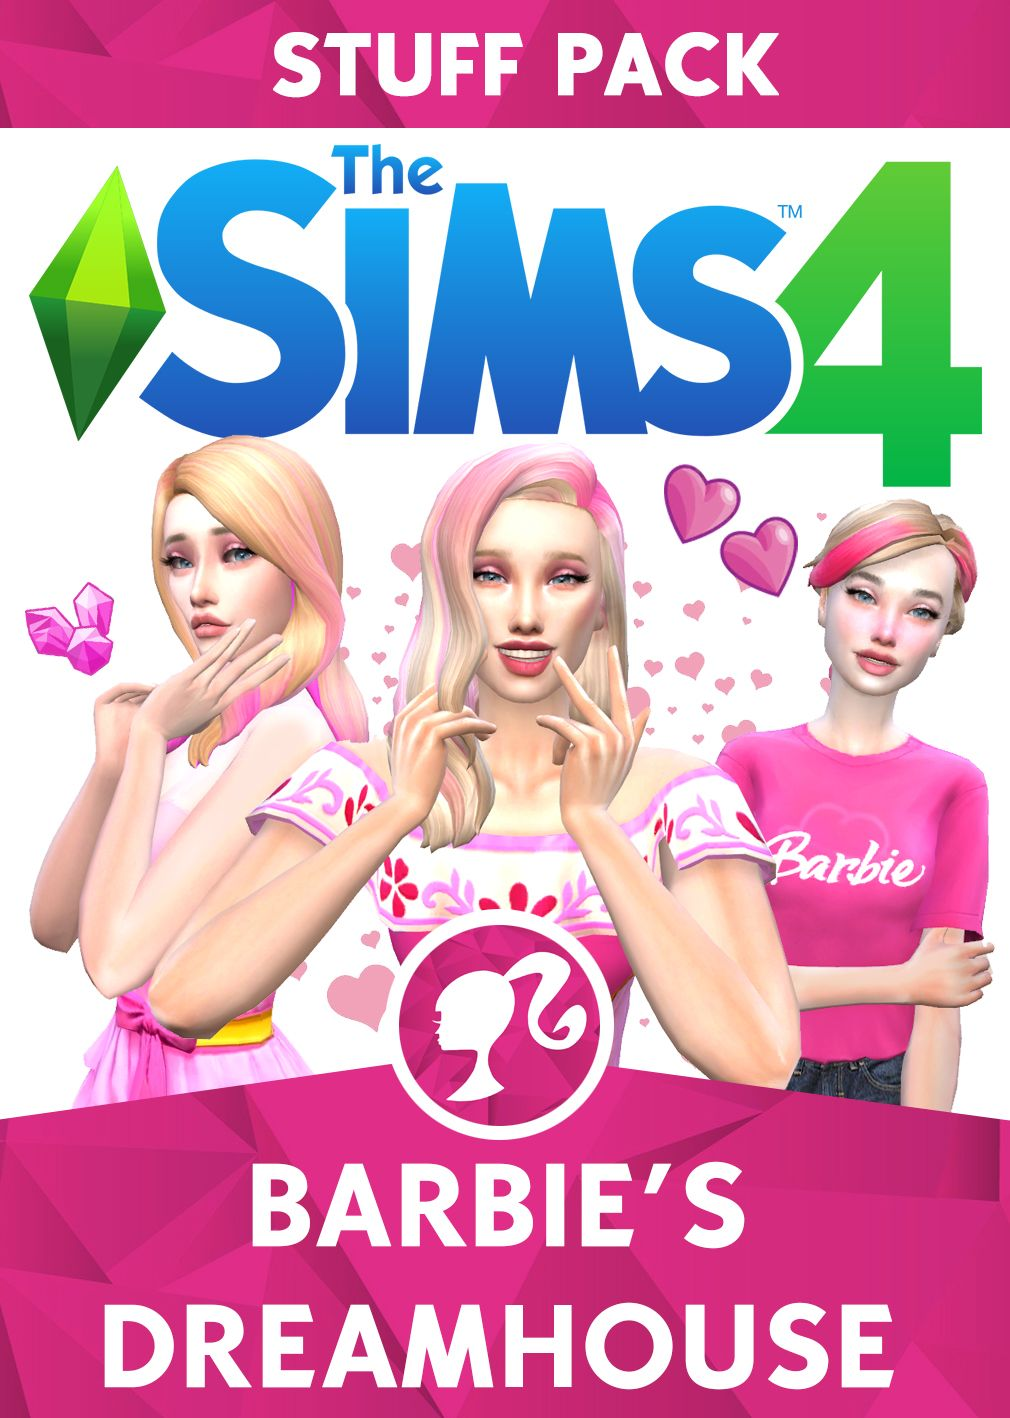 Barbie S Dreamhouse Sims 4 Expansions The Sims 4 Packs Sims 4 Custom Content